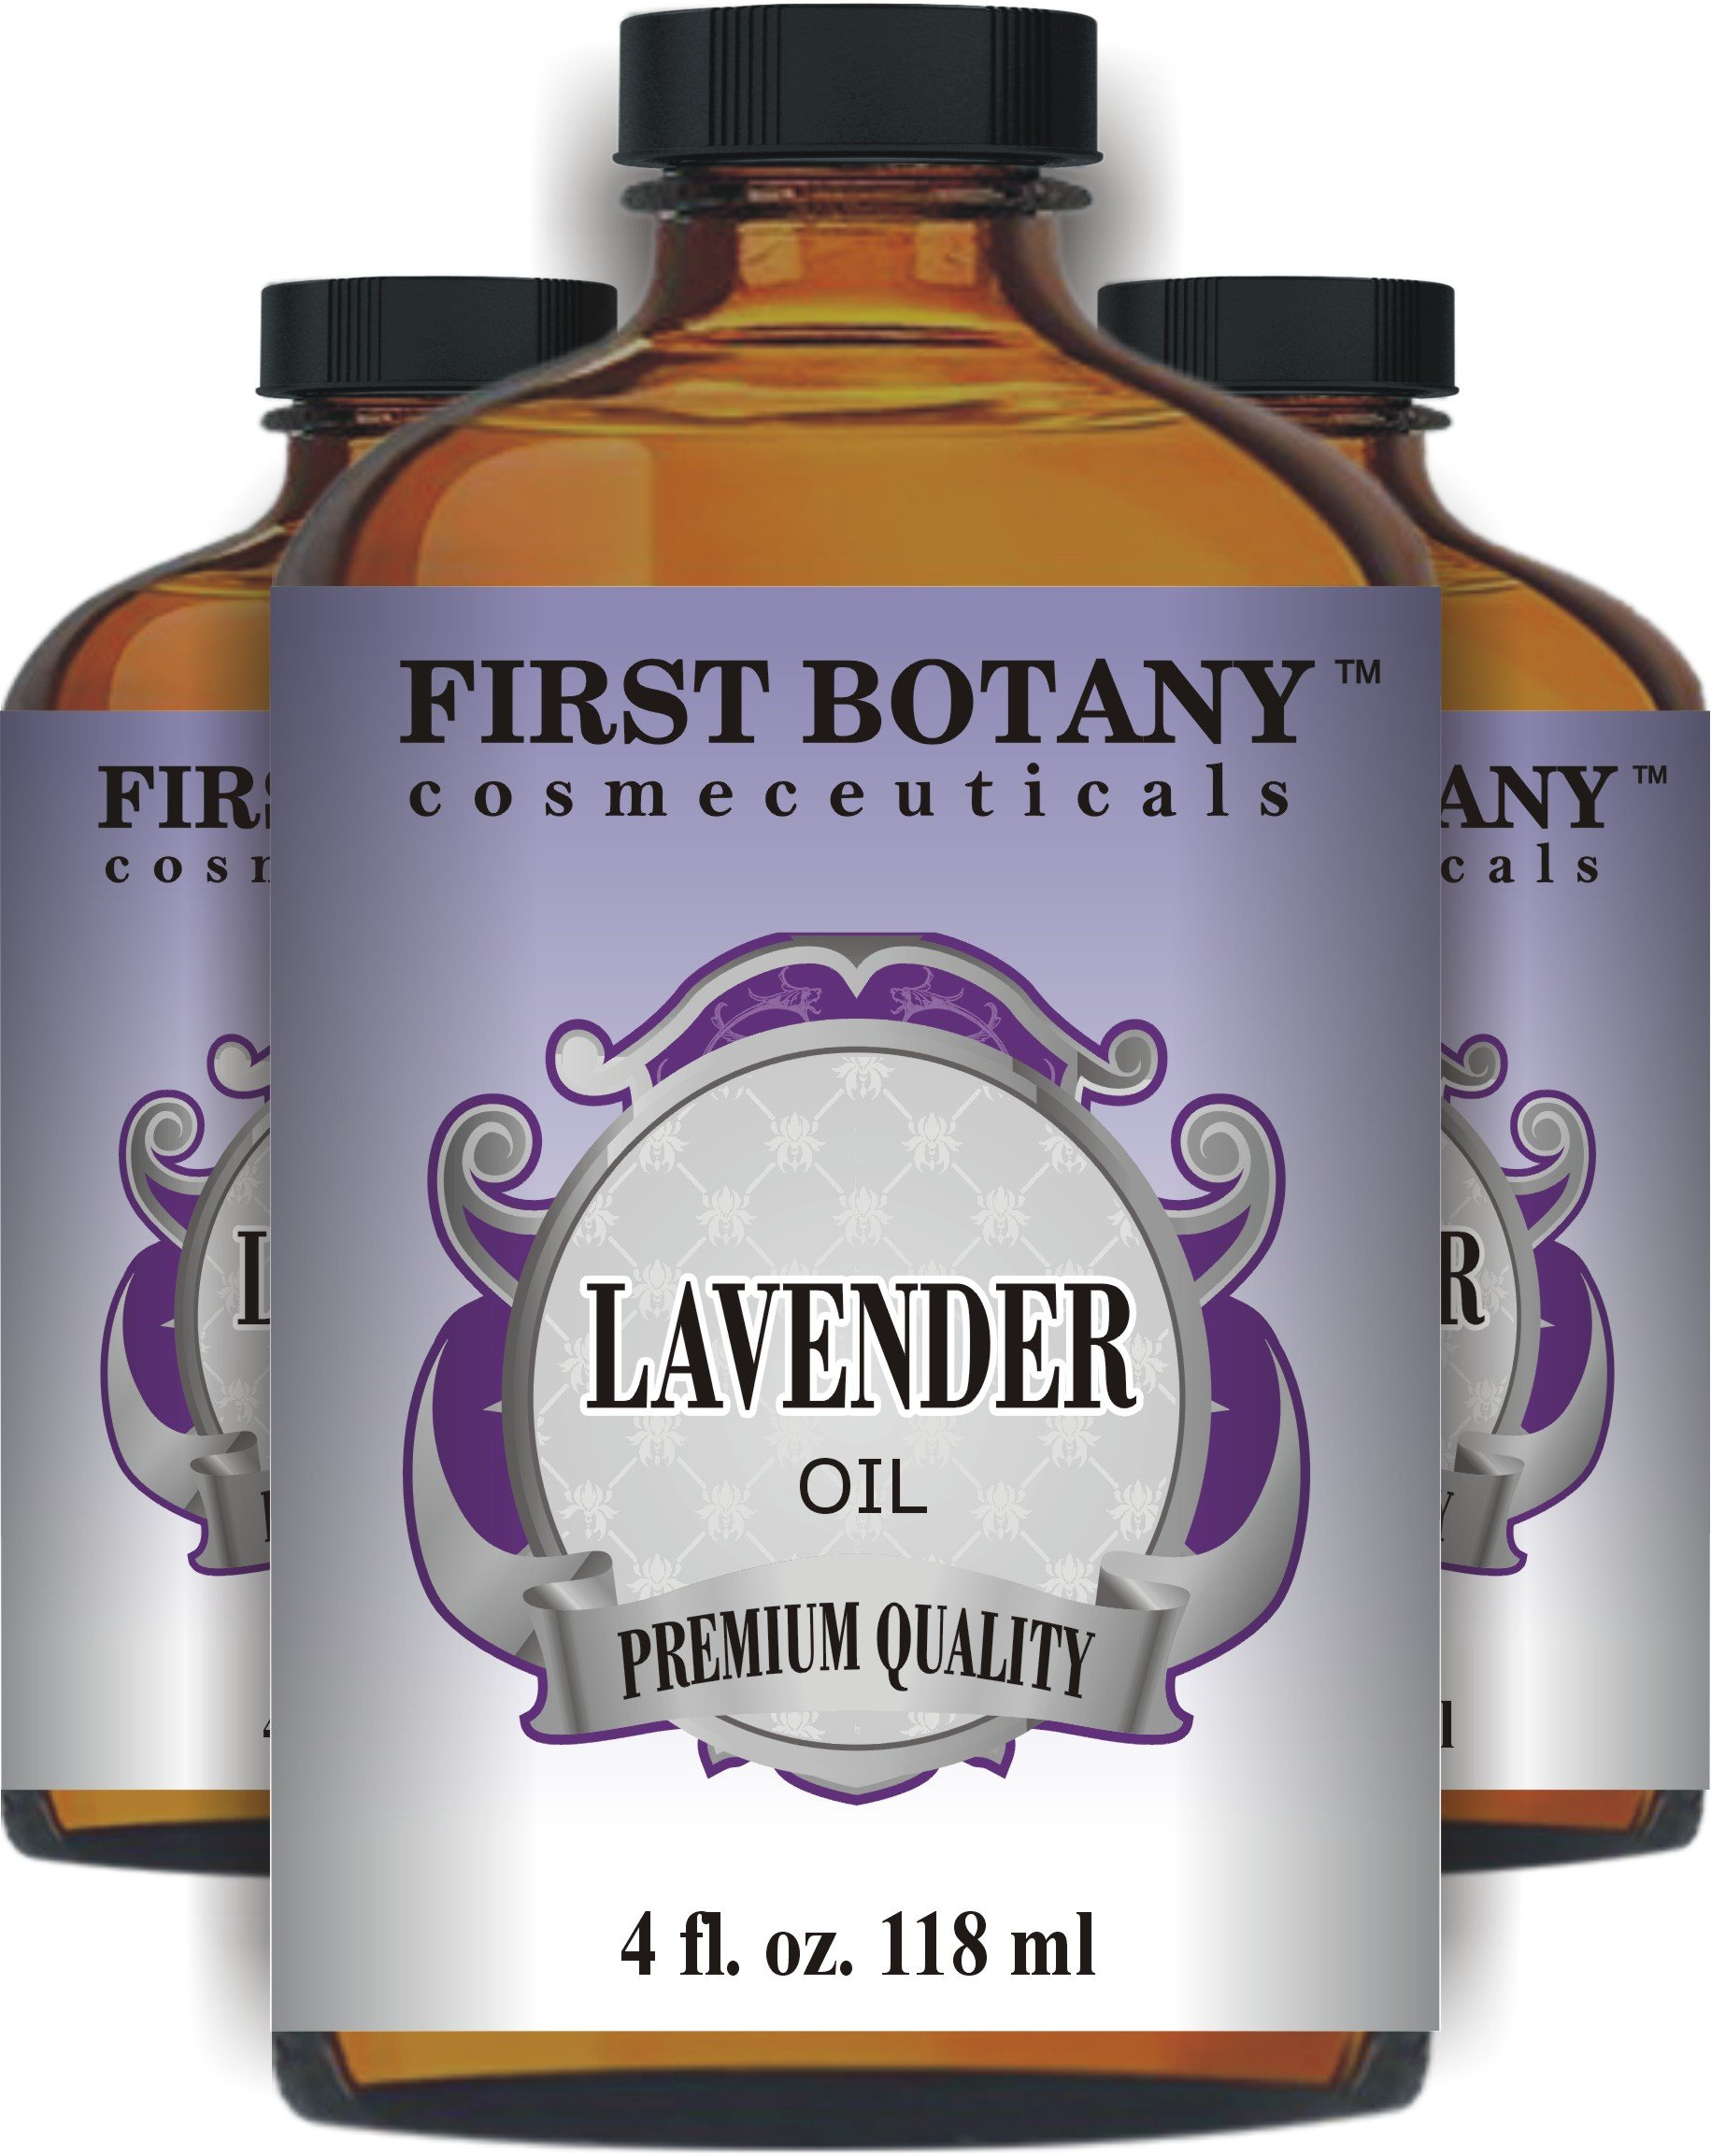 First Botany Cosmeceuticals Lavender Oil with a Glass Dropper, 4 oz (Natural Isolates) by First Botany Cosmeceuticals (Image #2)